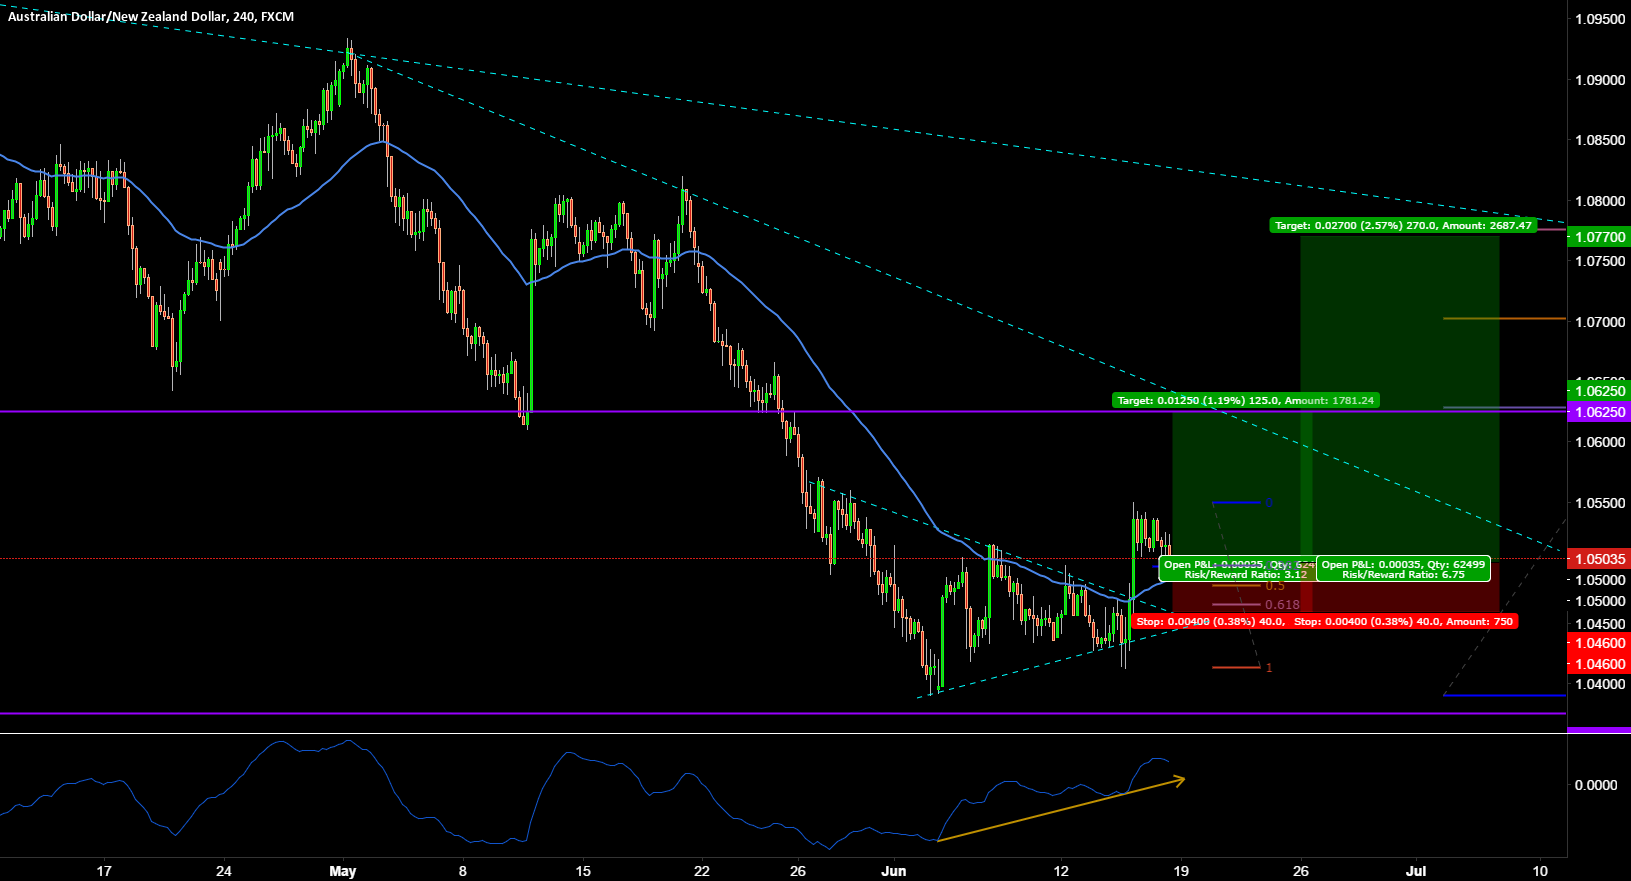 AUDNZD LONG TRADE SETUP